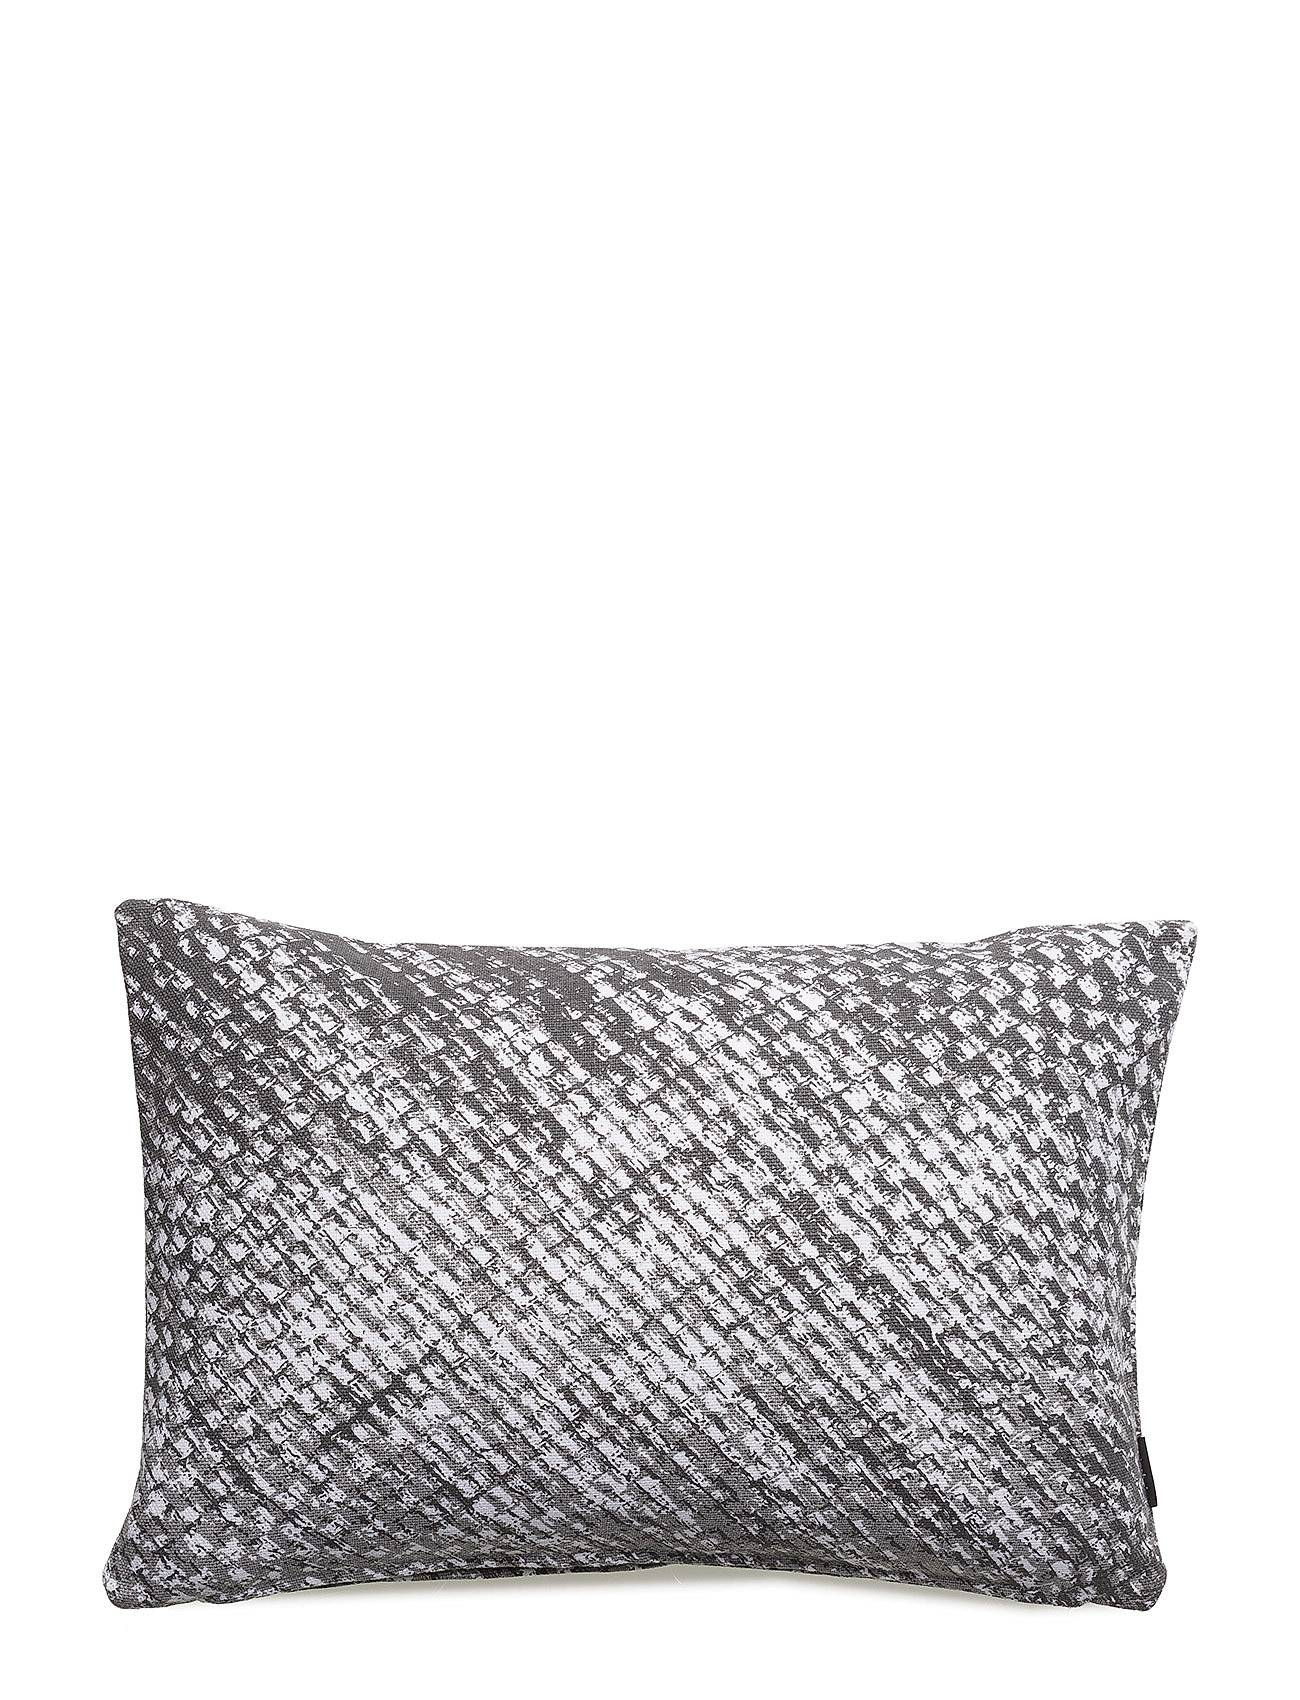 Gripsholm Cushion Cover Liam